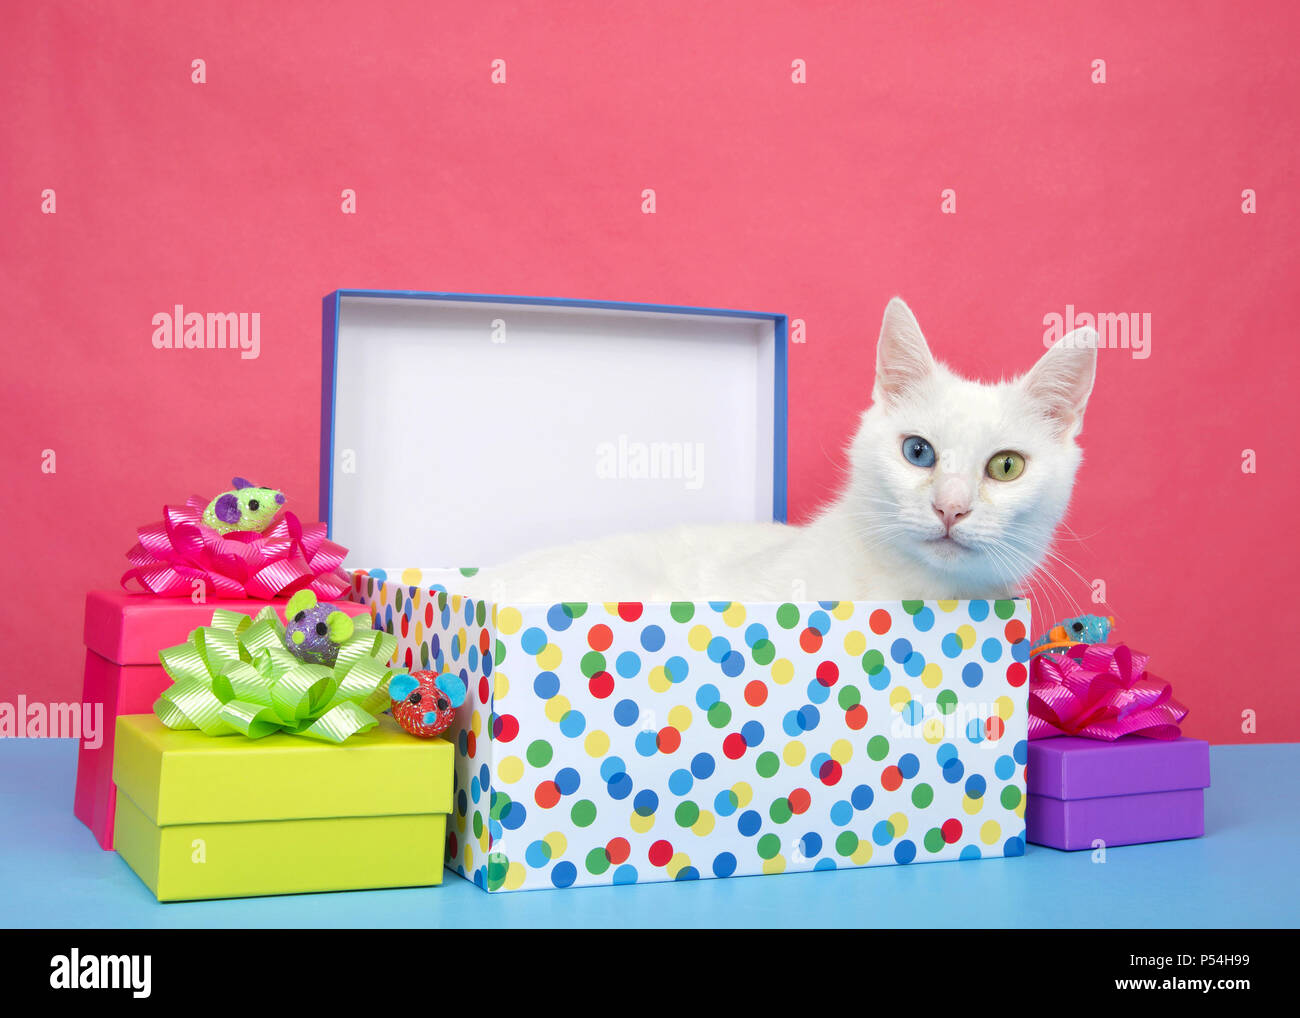 Adorable White Medium Haired Cat With Heterochromia Odd Eyed Laying In A Birthday Present Surrounded By Colorful Presents On Blue Surface Pink Backg